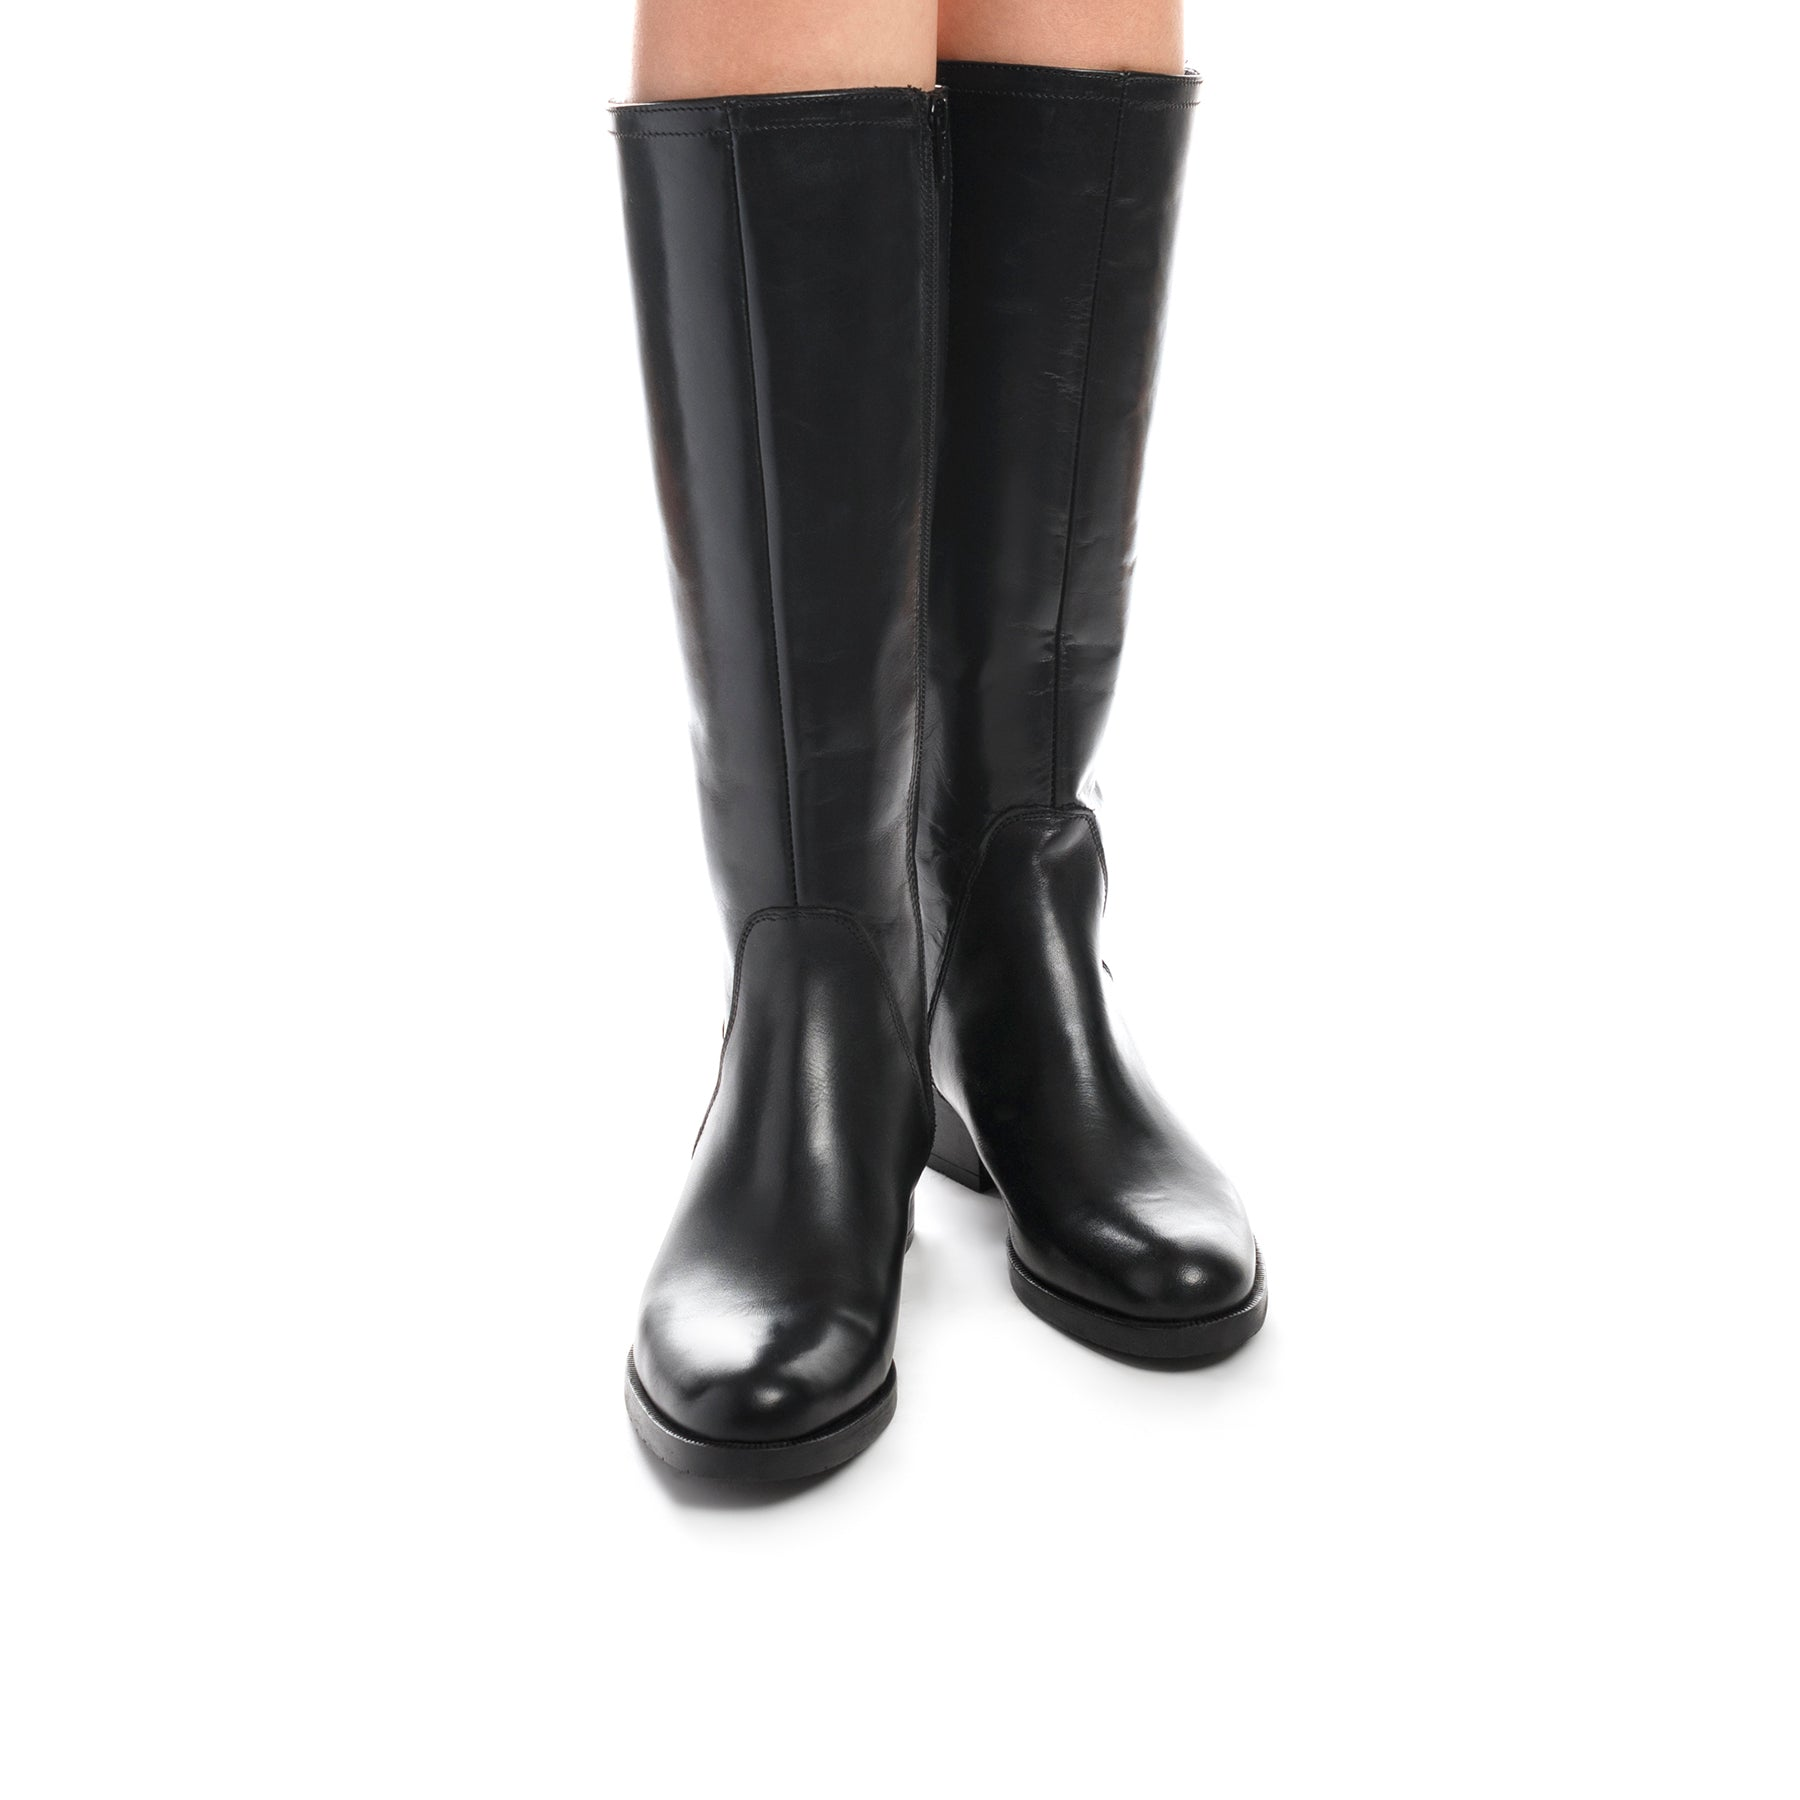 Equestria Black Leather Boots